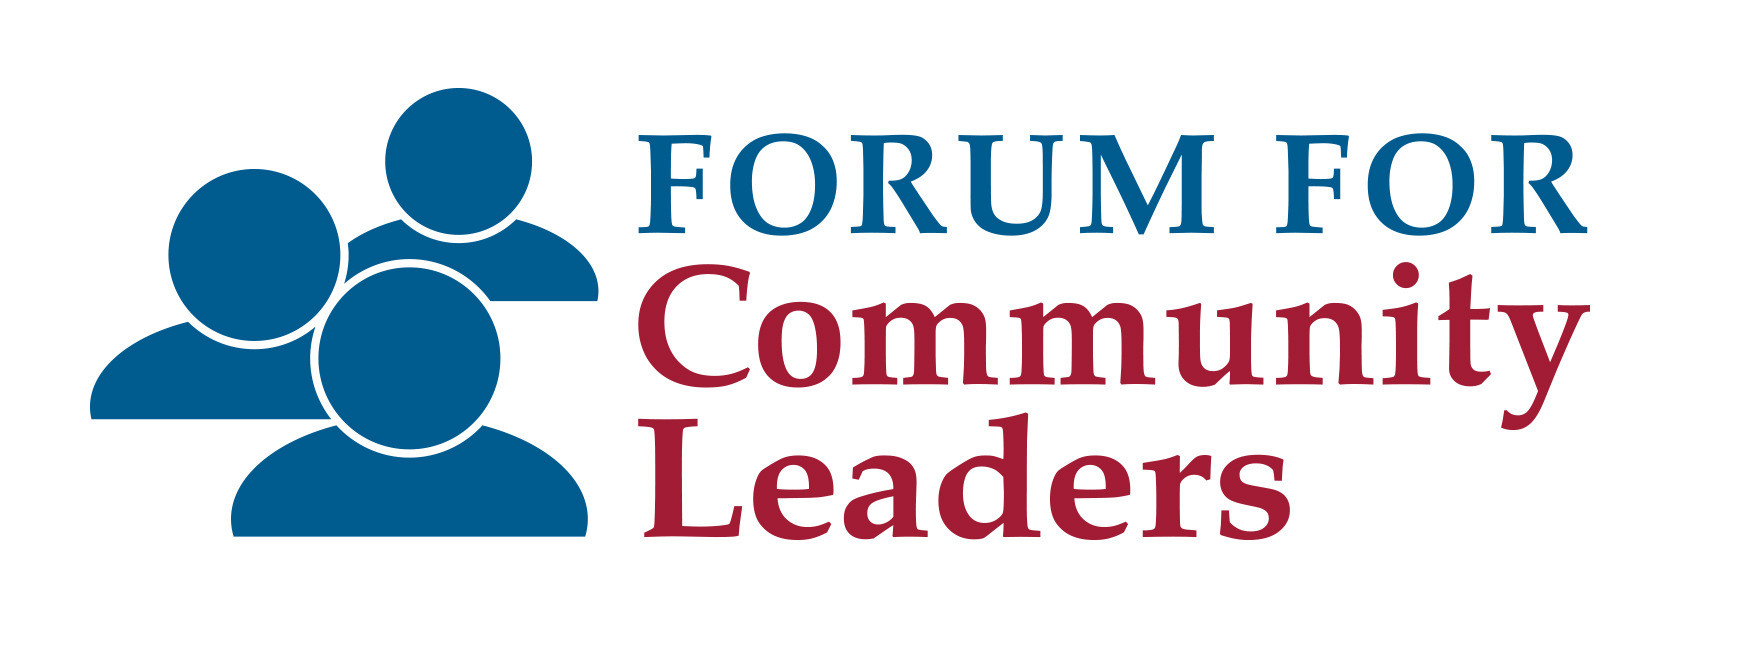 Forum for Community Leaders